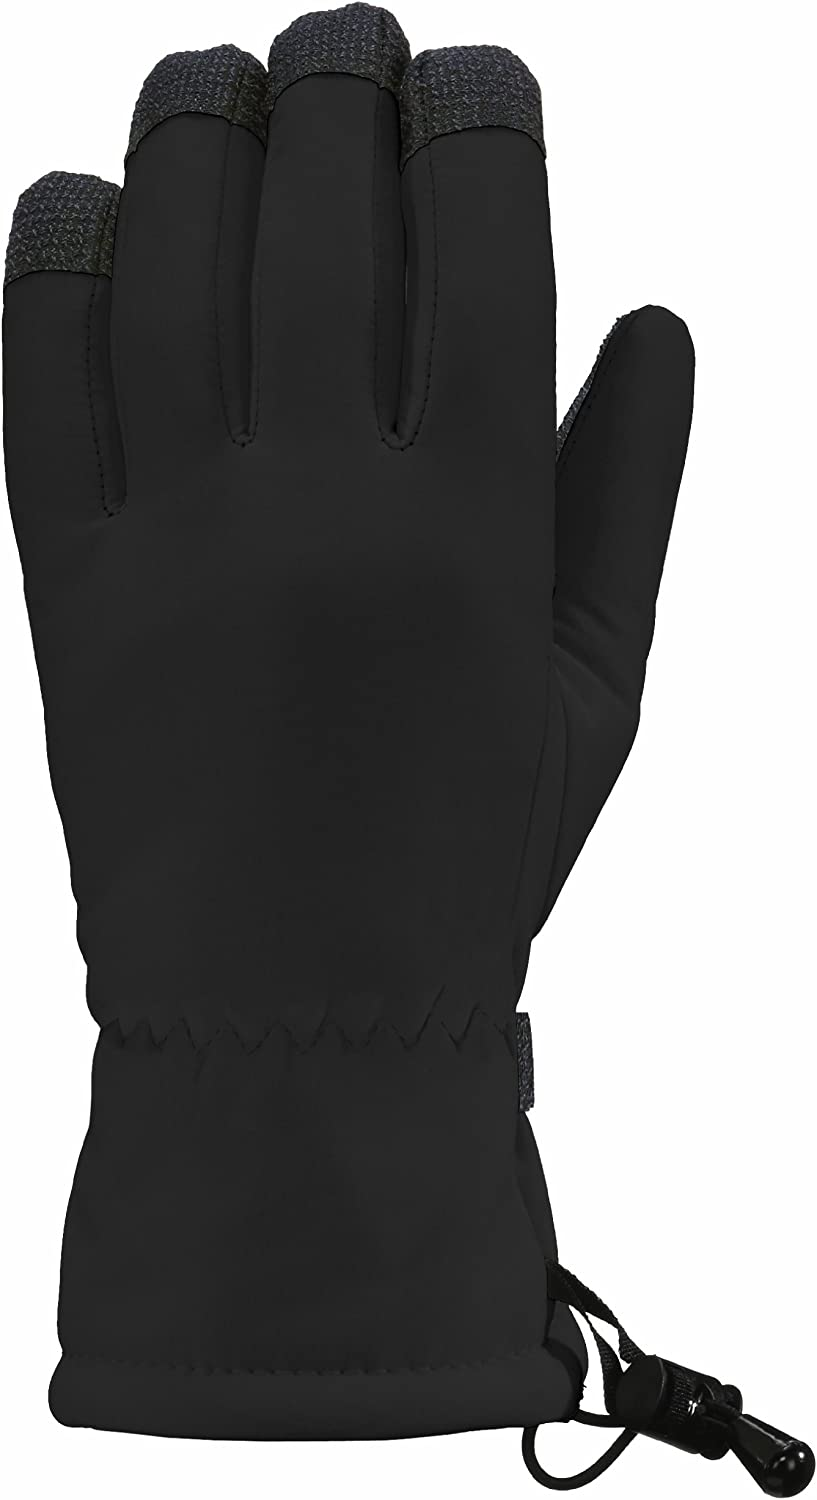 Puncture Cut Heat Resistant Seirus Innovation 8107 Workman All Weather Amara Gauntlet Glove